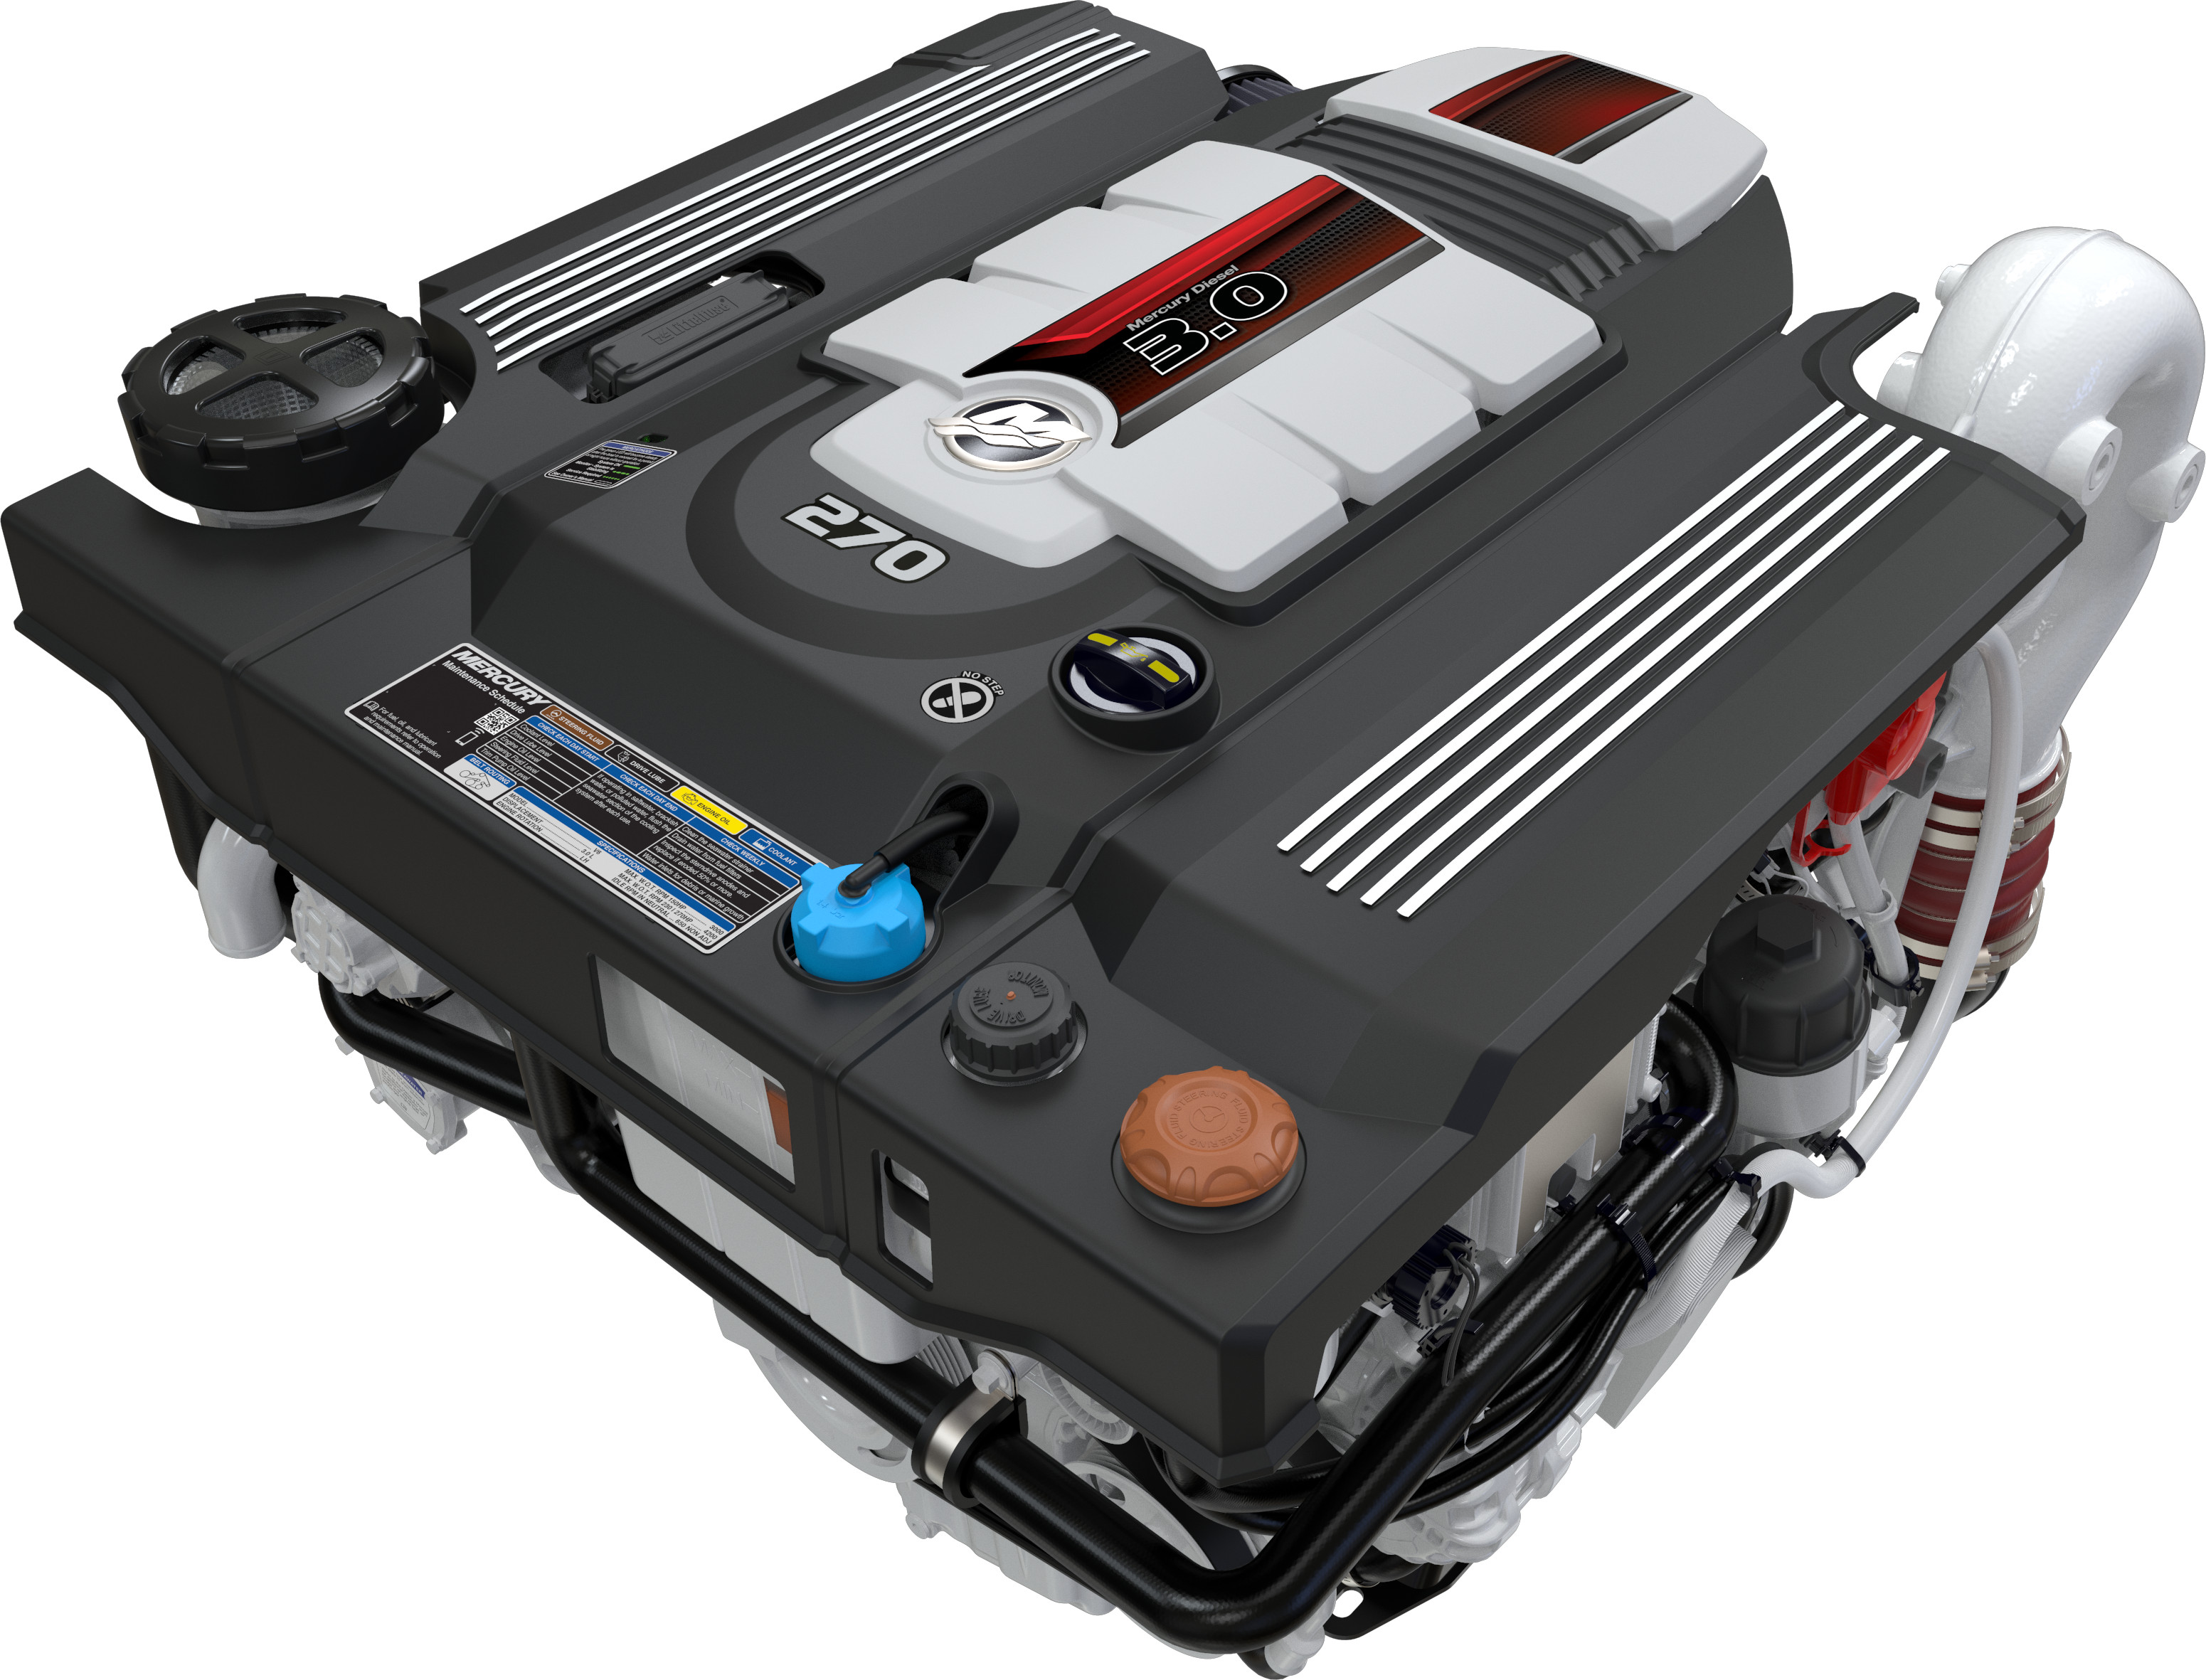 Mercury Diesel 3.0L 150-270hp engines introduced at SIBS